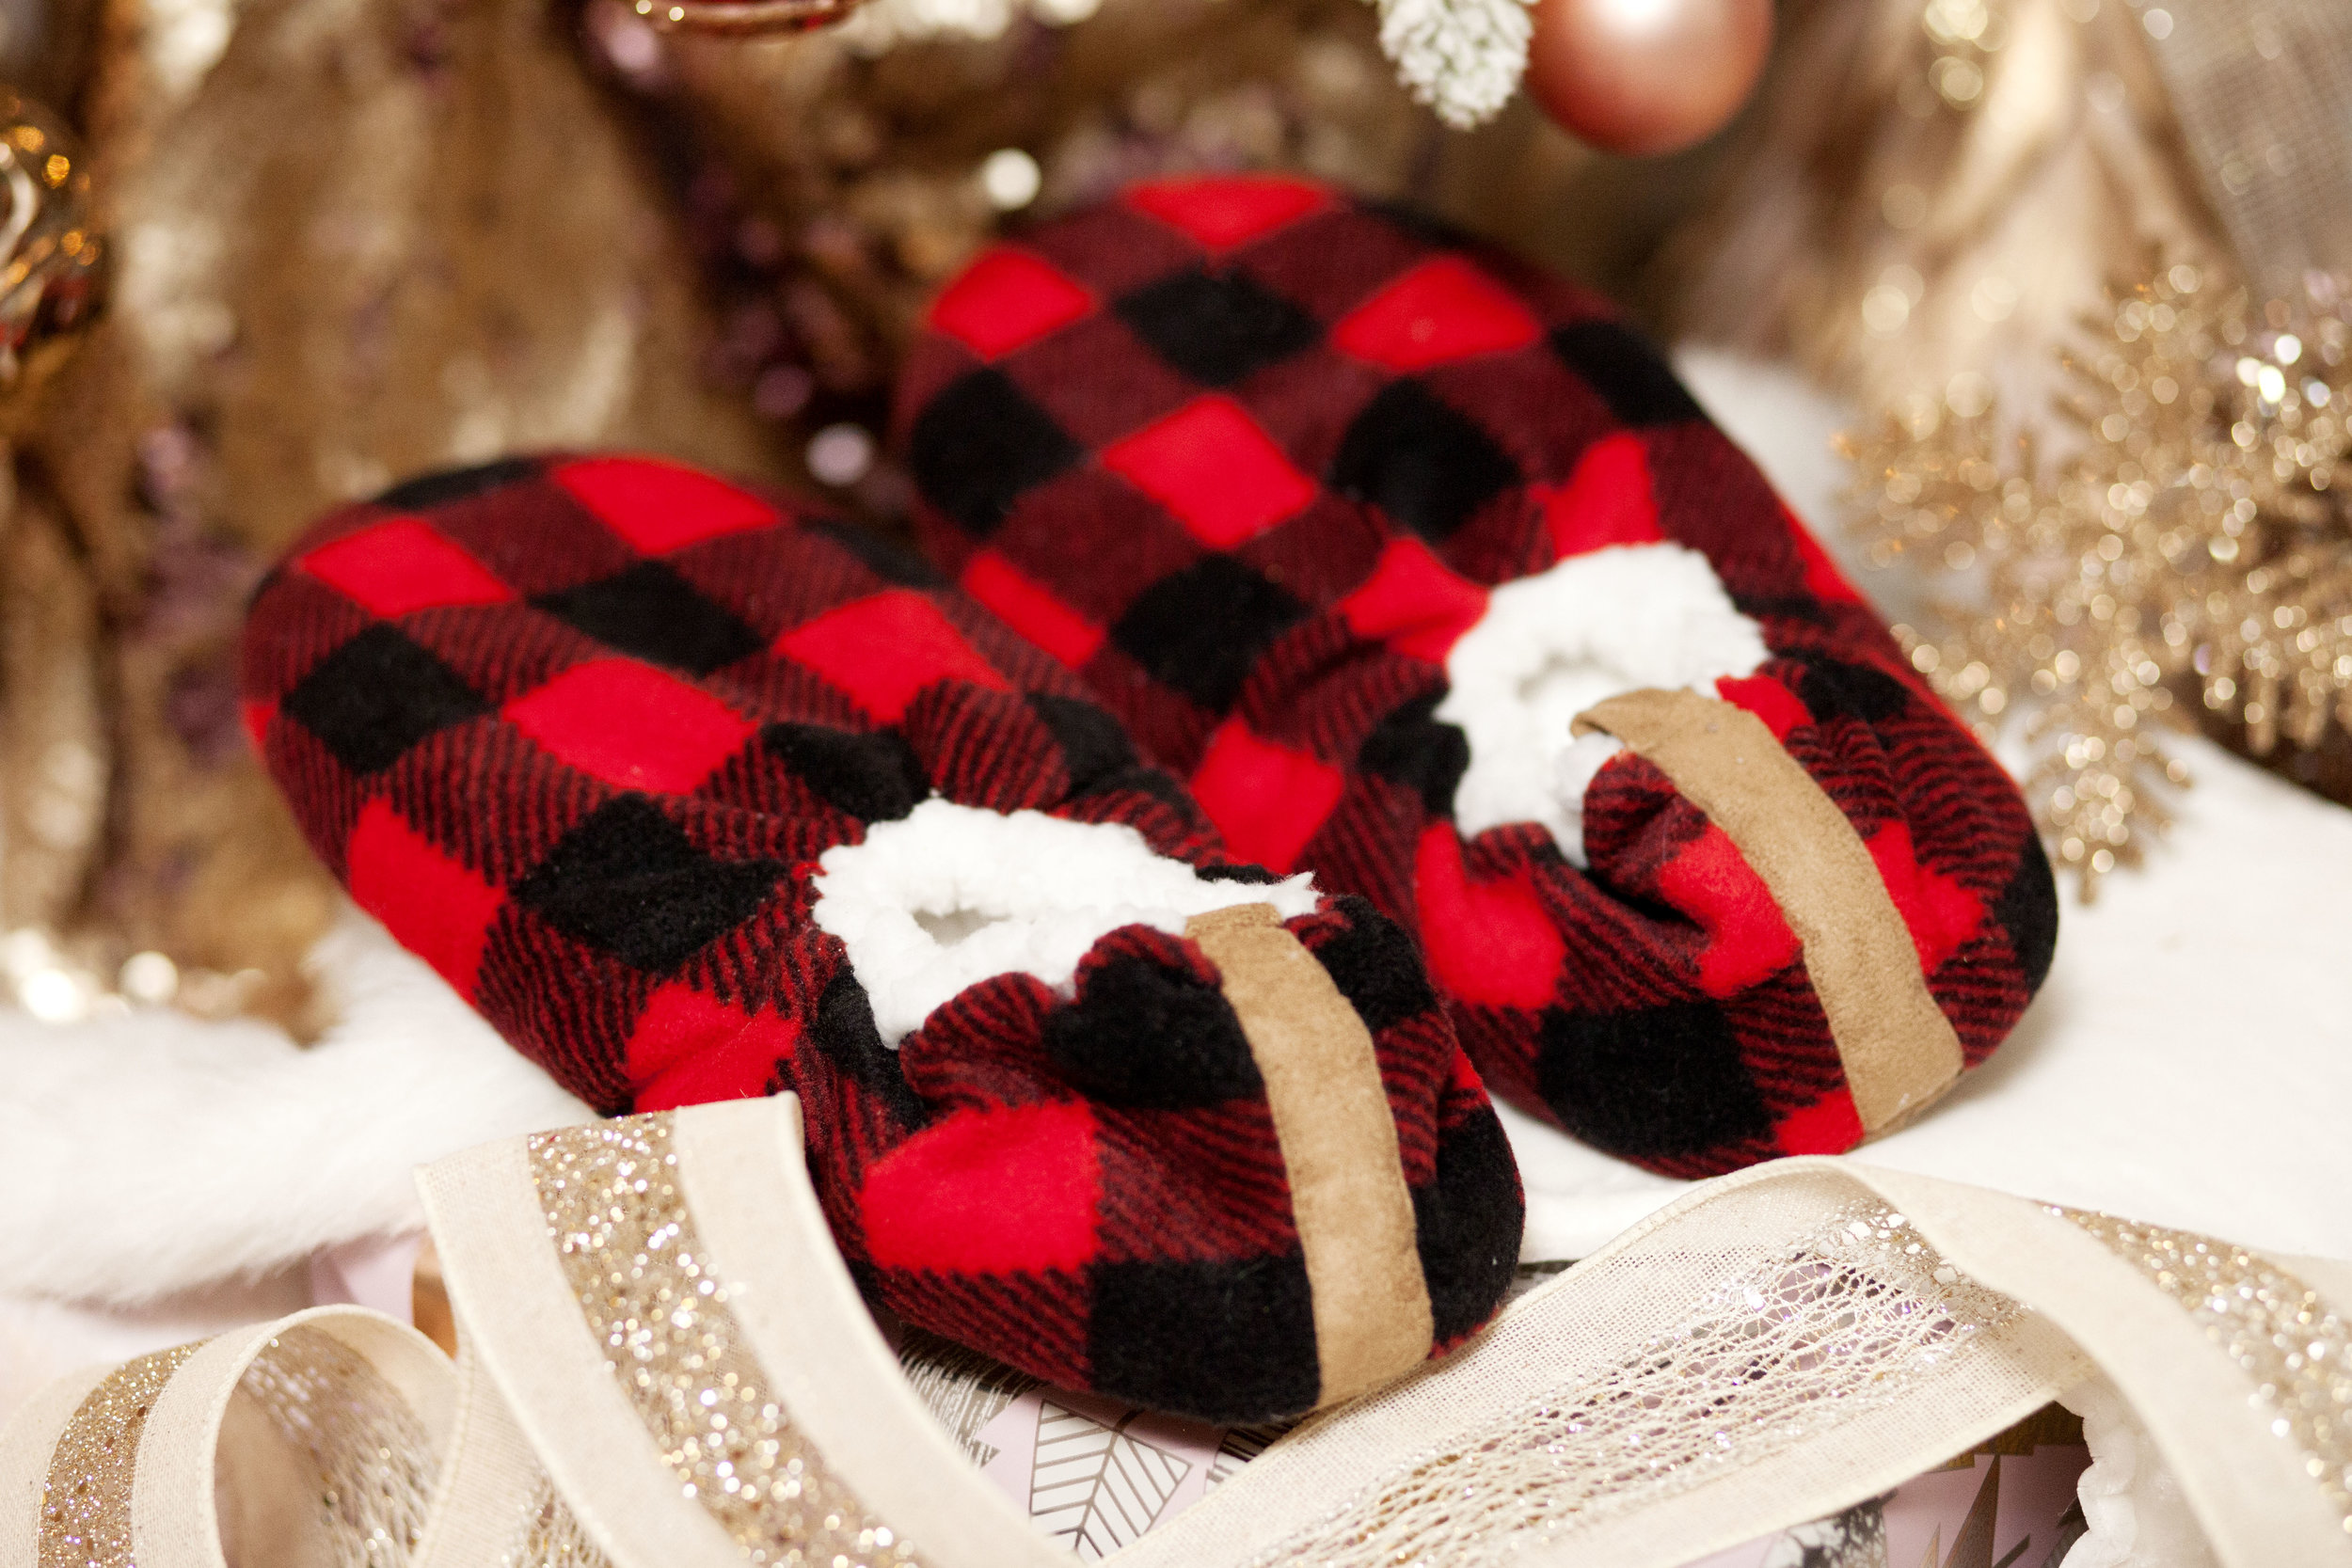 Fuzzy Baba Plaid Slippers - The Gilded Bellini Holiday Gift Guide